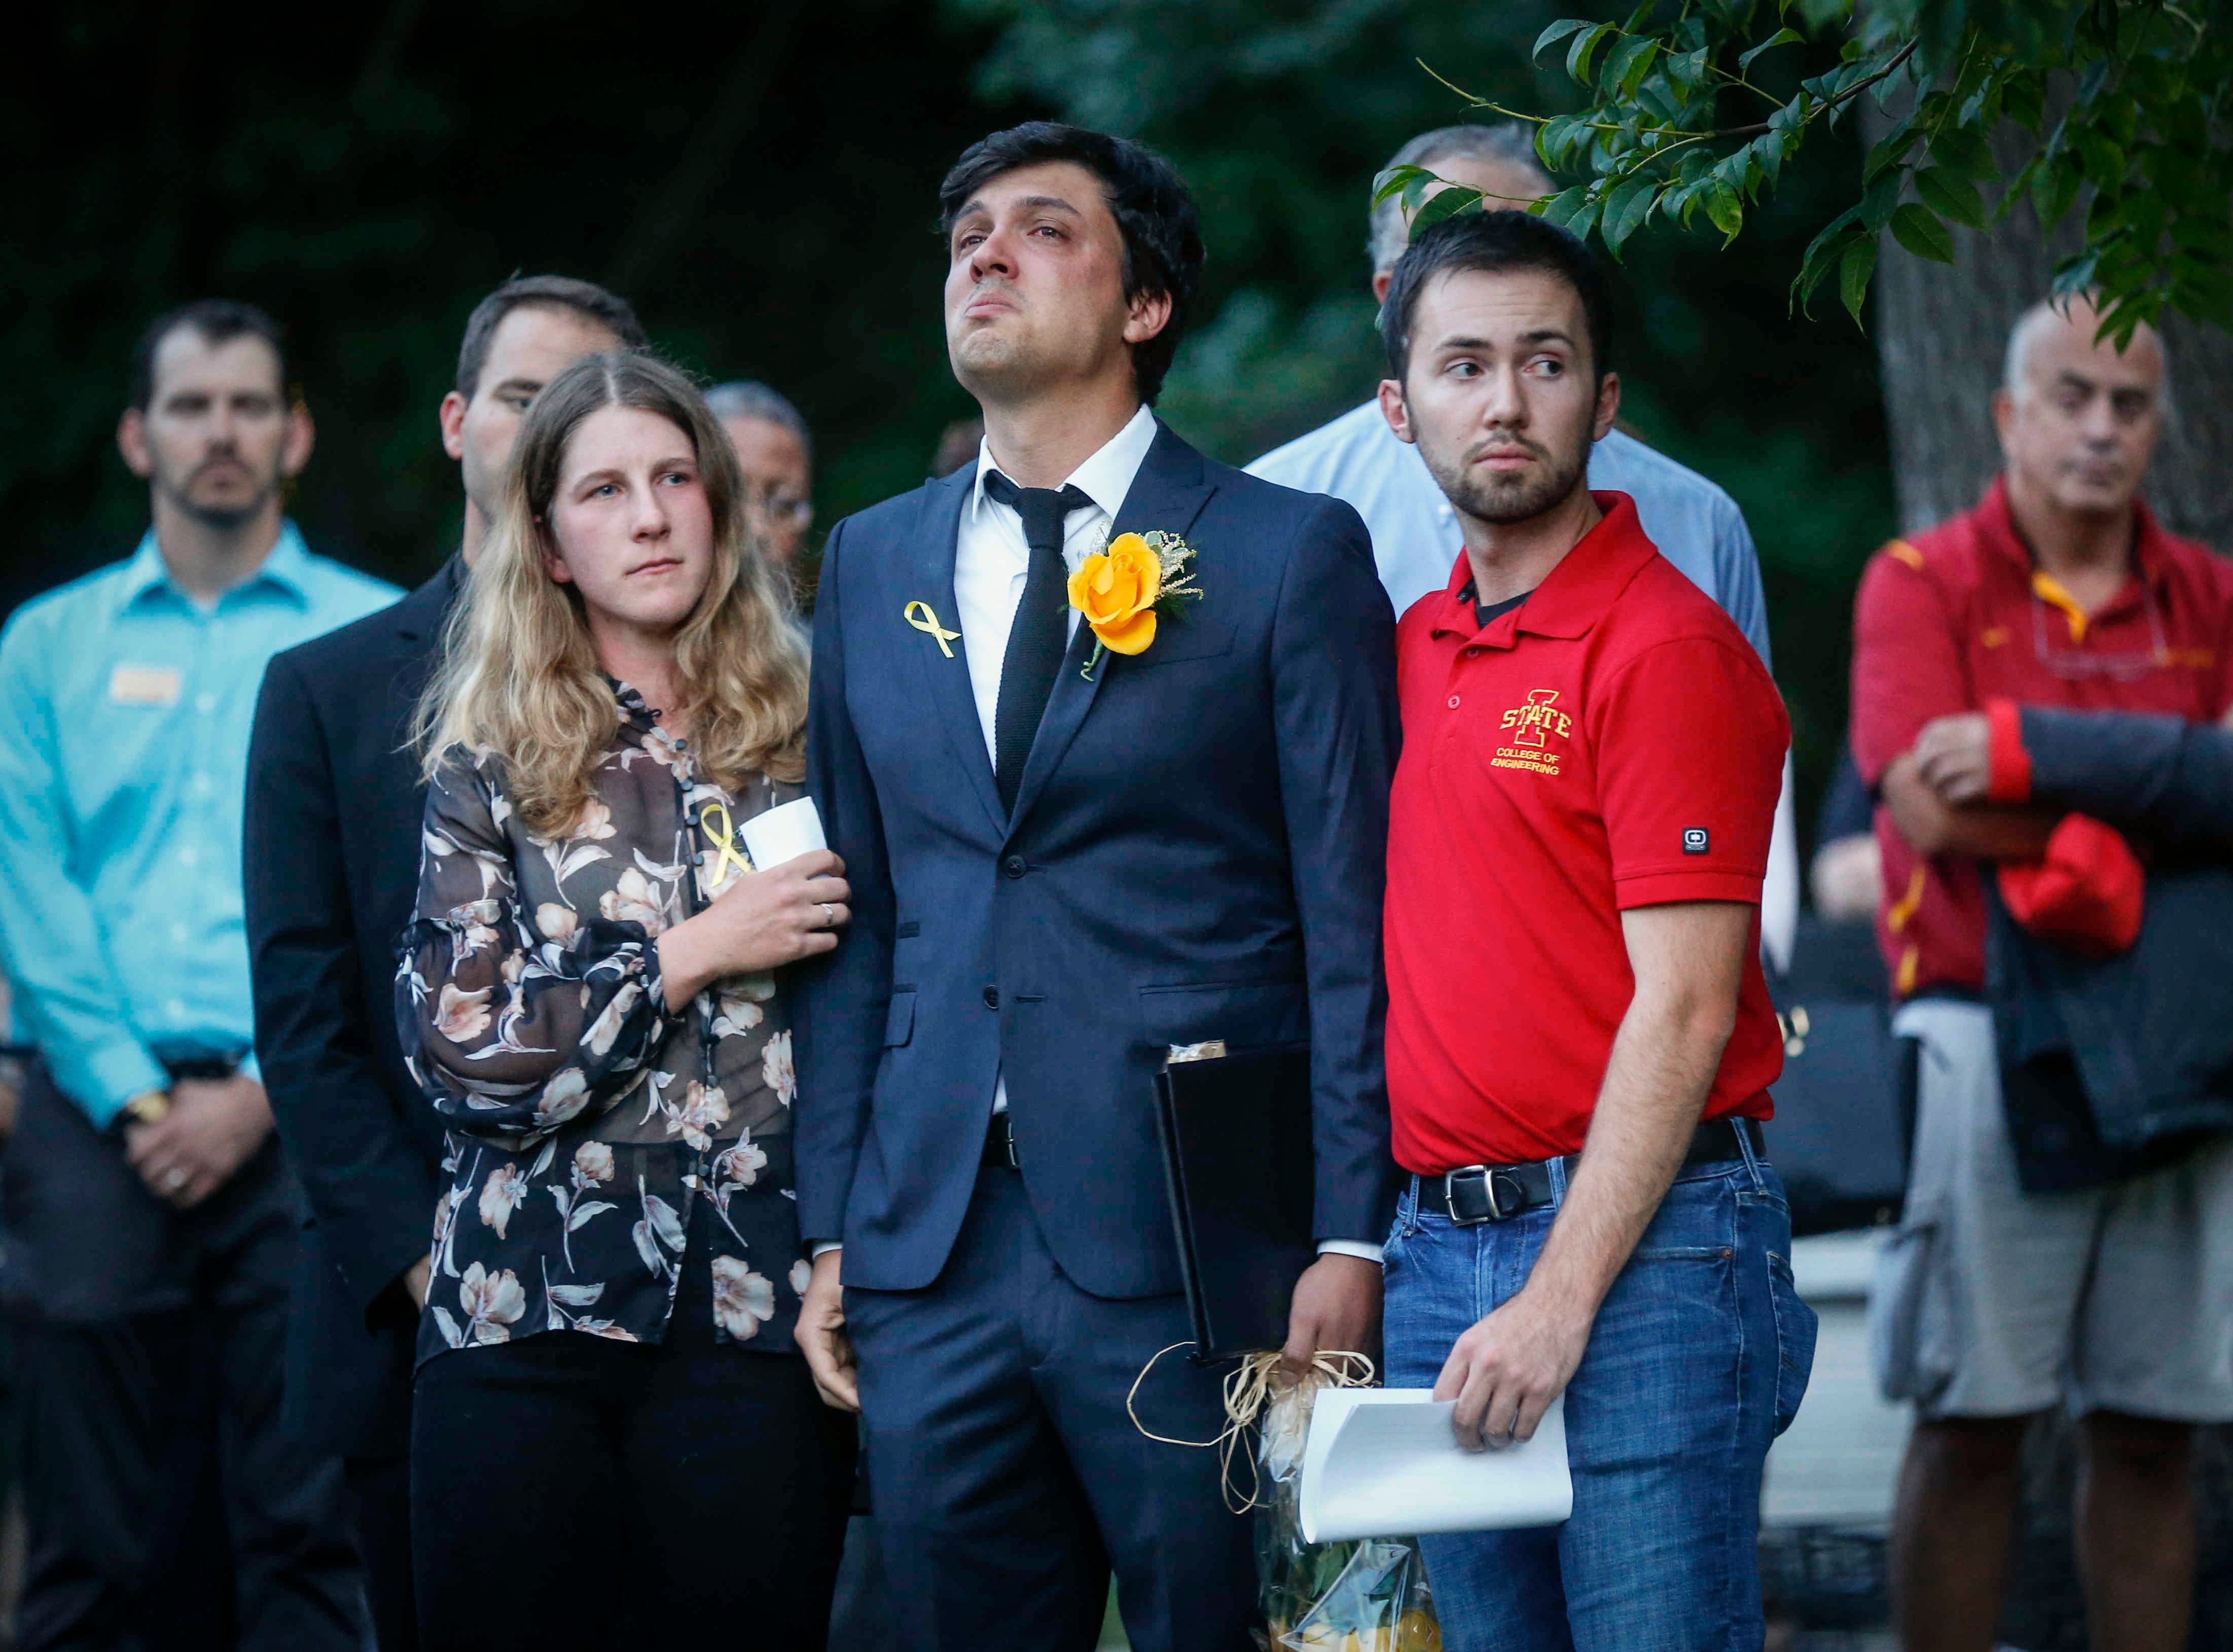 Carlos Negrin Bola–os, boyfriend of Iowa State student Celia Barquin Arozamena, fights his emotions as students, faculty and community members mourn Arozamena during a vigil on Wednesday, Sept. 19, 2018, in Ames.